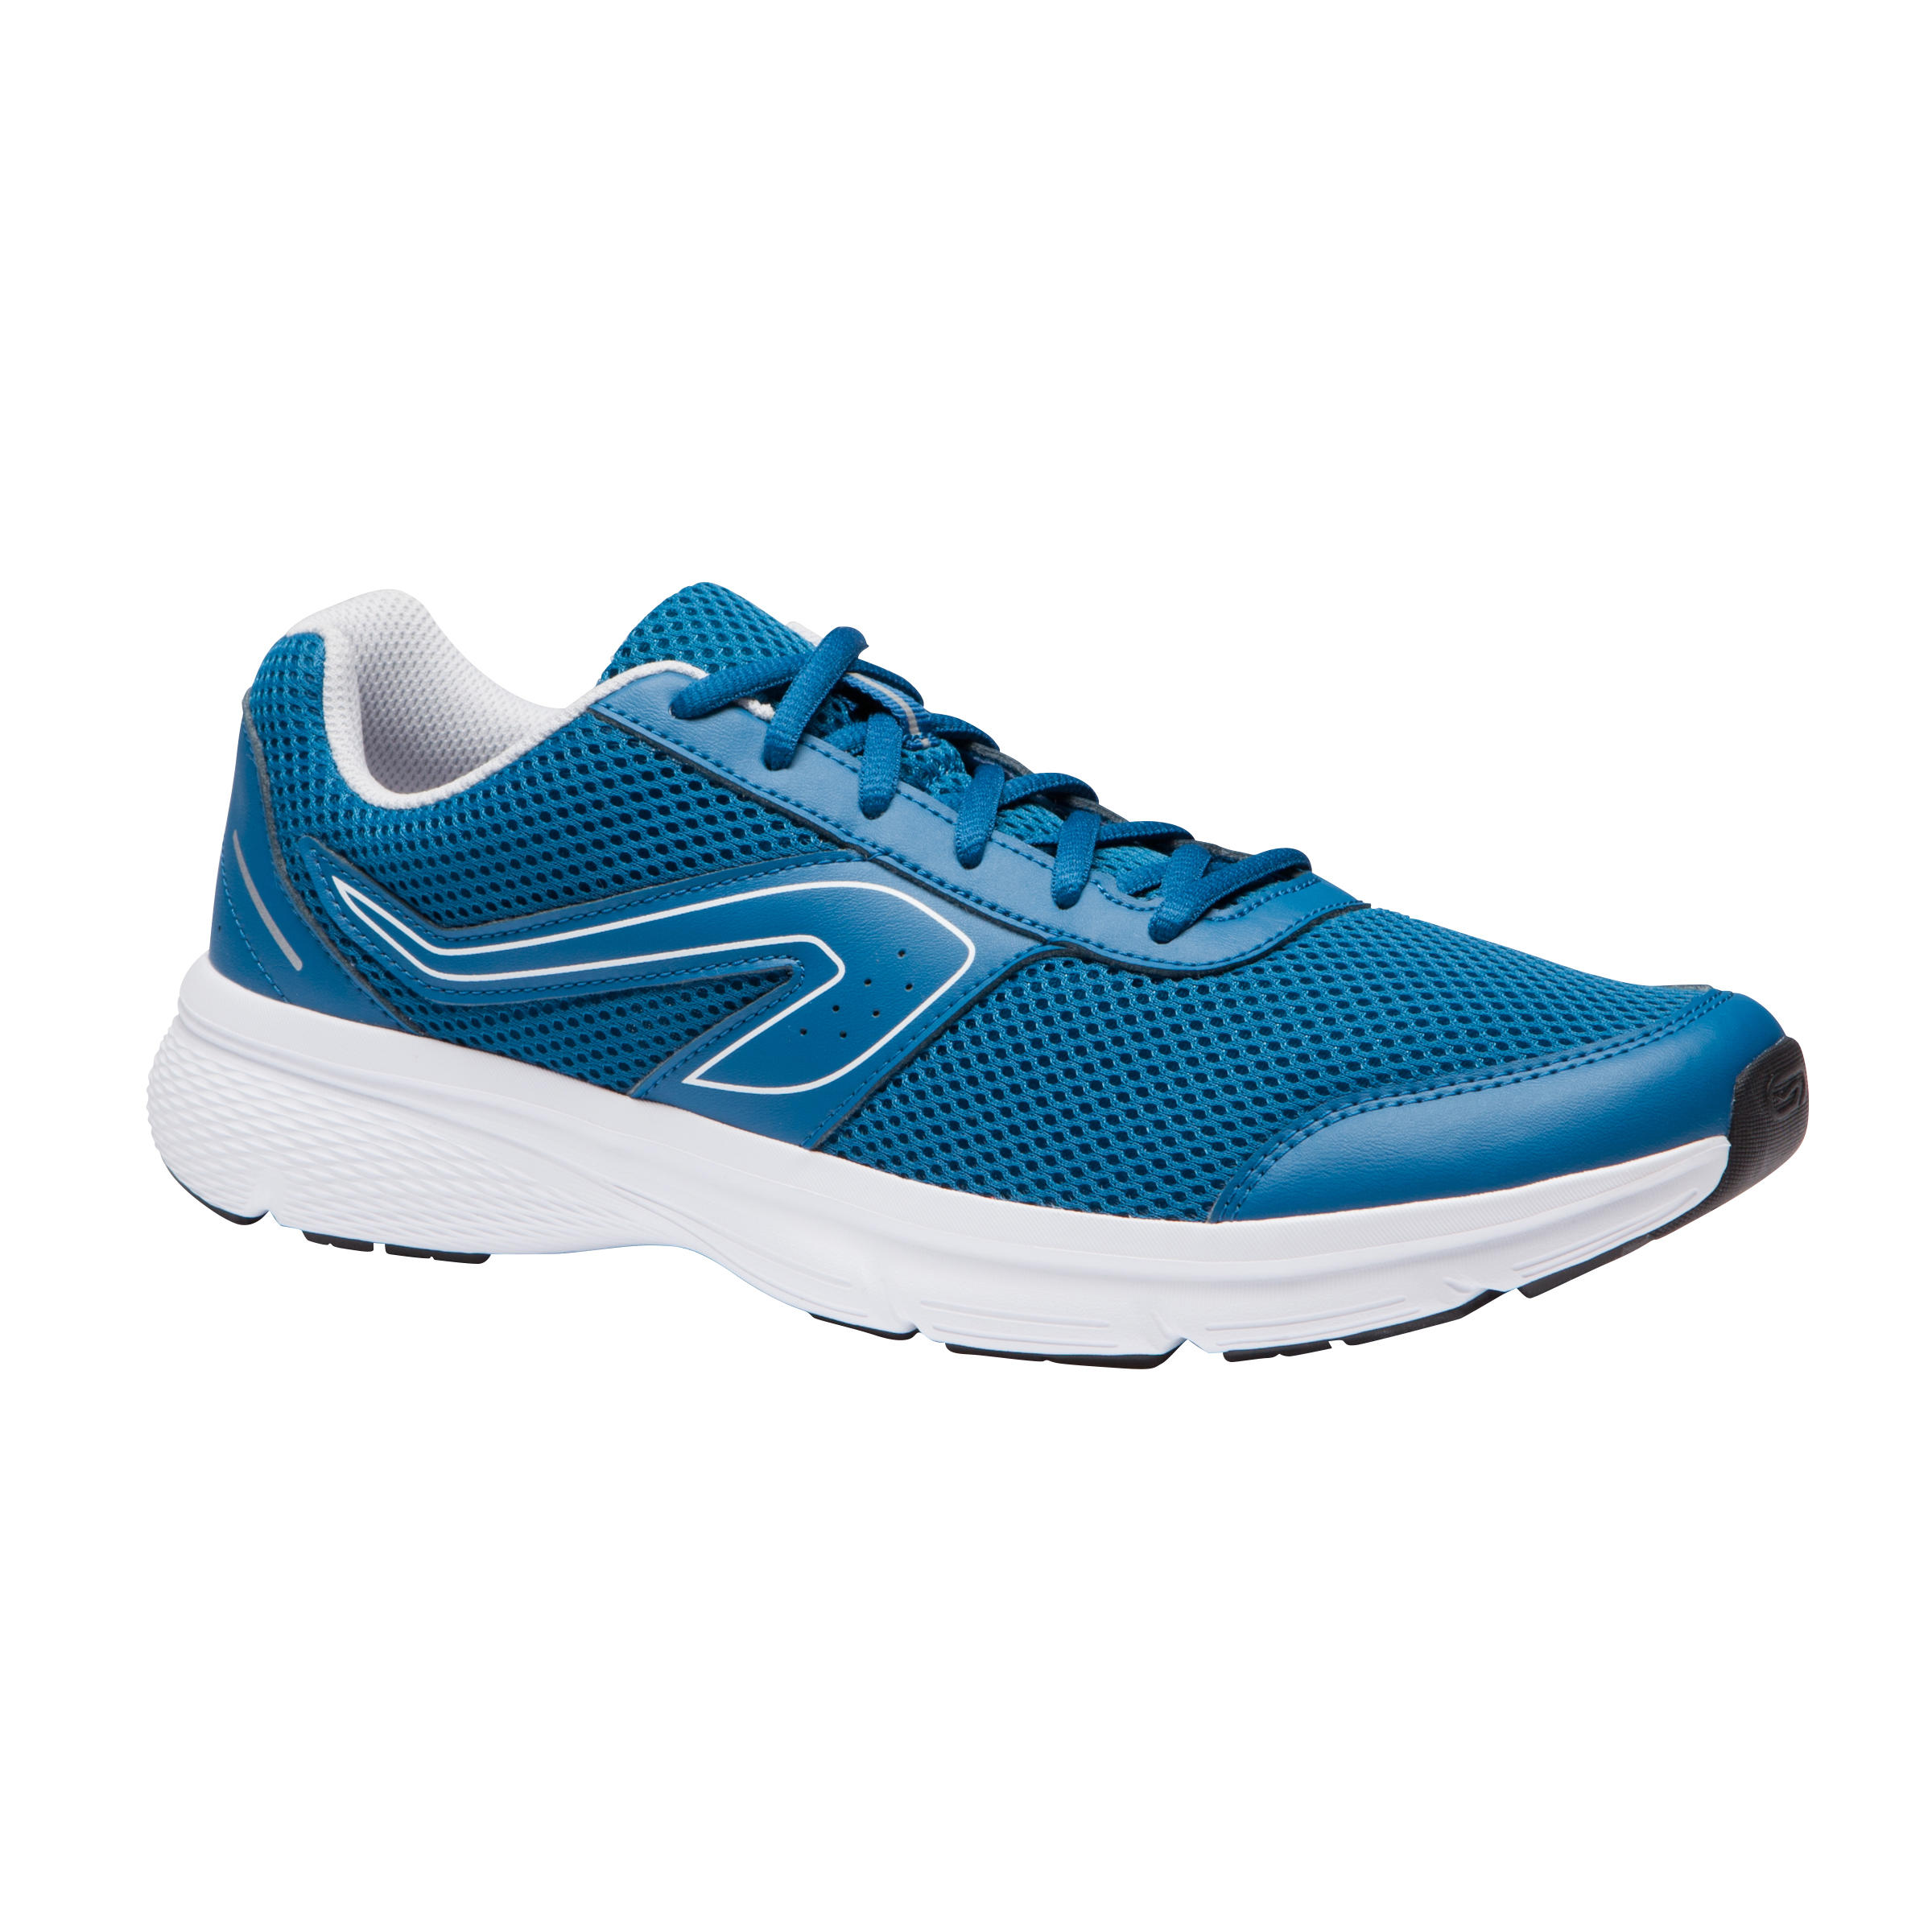 Buy Shoes for Running, Jogging and Sports Online at KALENJI